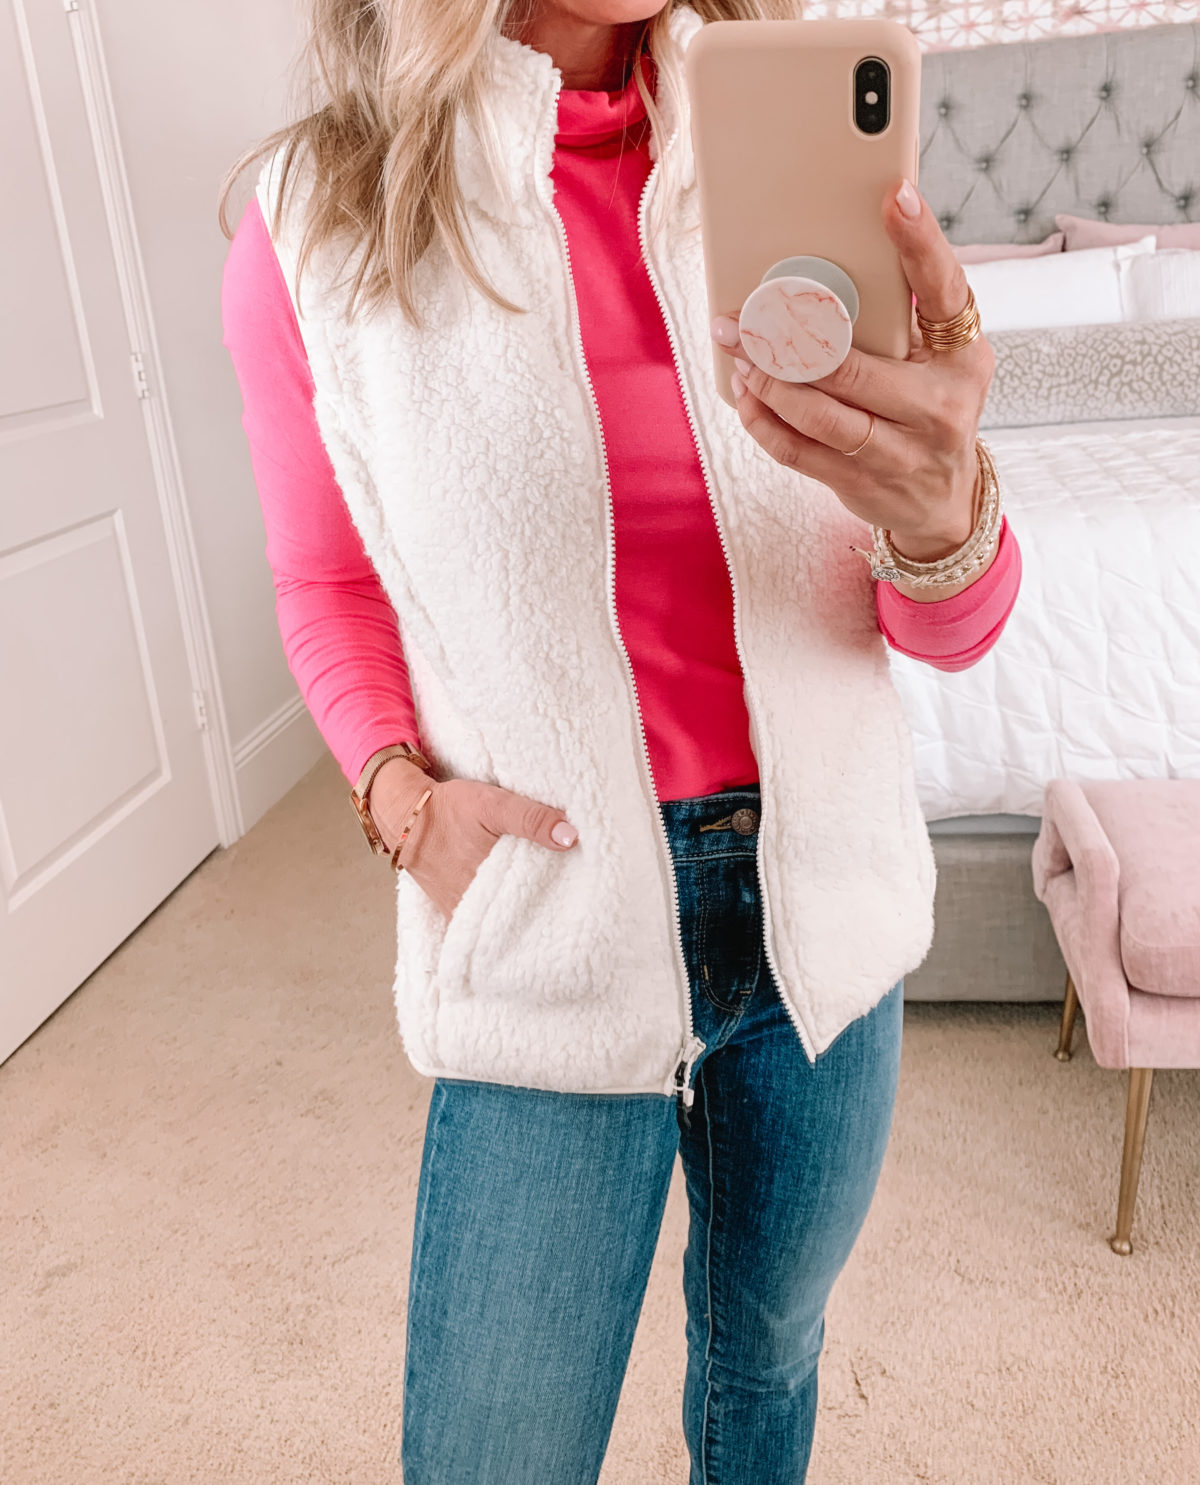 Amazon Fashion Faves, Pink Turtleneck, Vest, Jeans, Booties, Hat